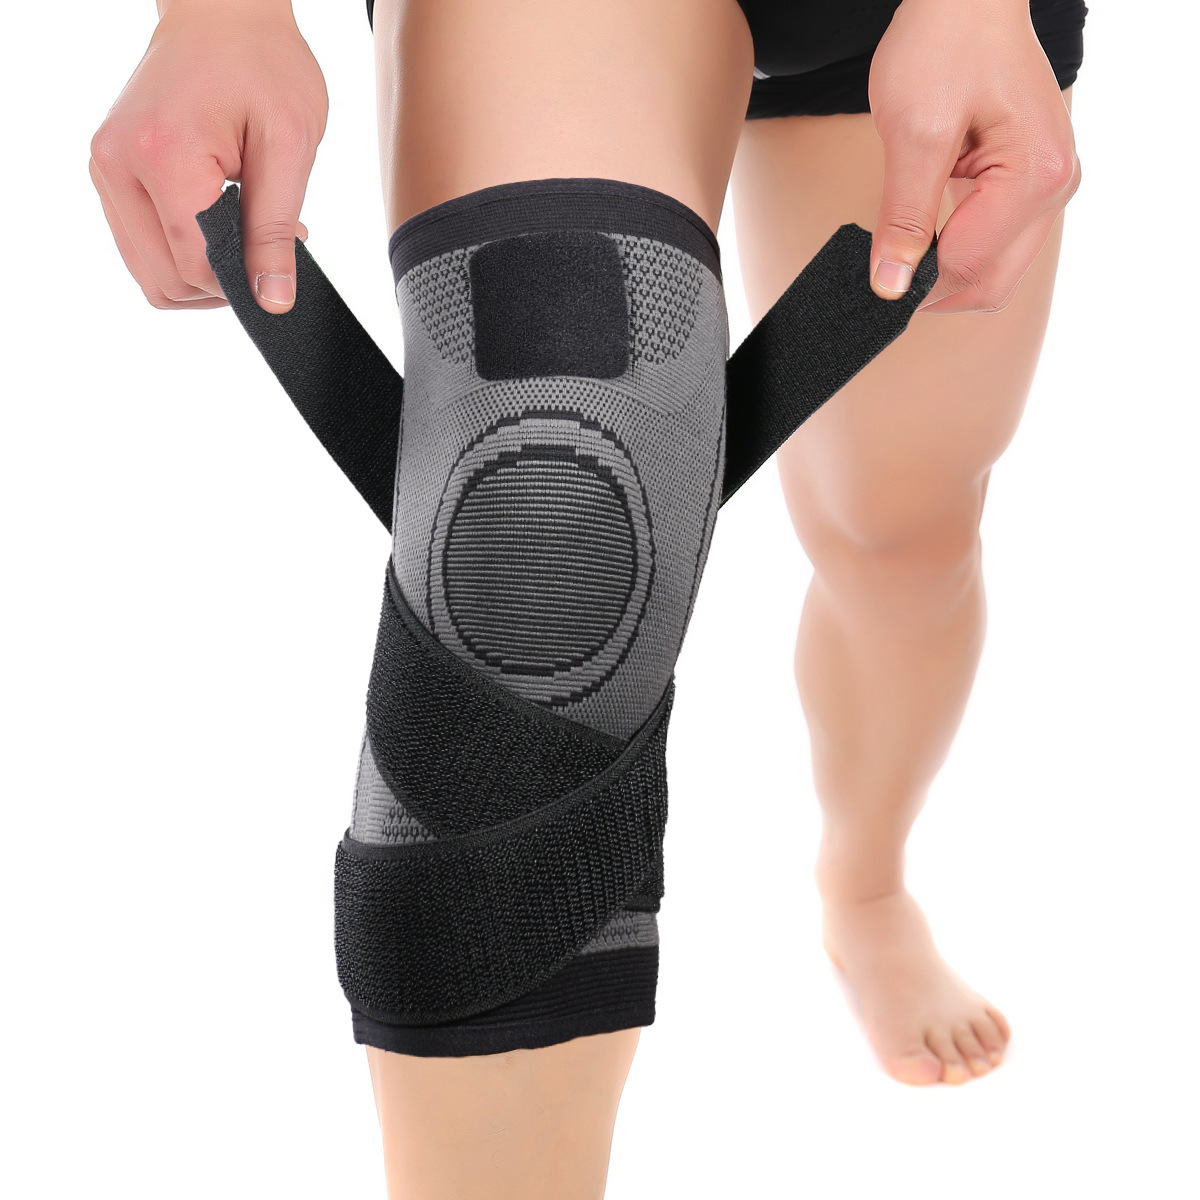 1PCS 3D Pressurized Fitness Running Cycling Bandage Knee Support Braces Elastic Nylon Compression Pad Sleeve For Basketball